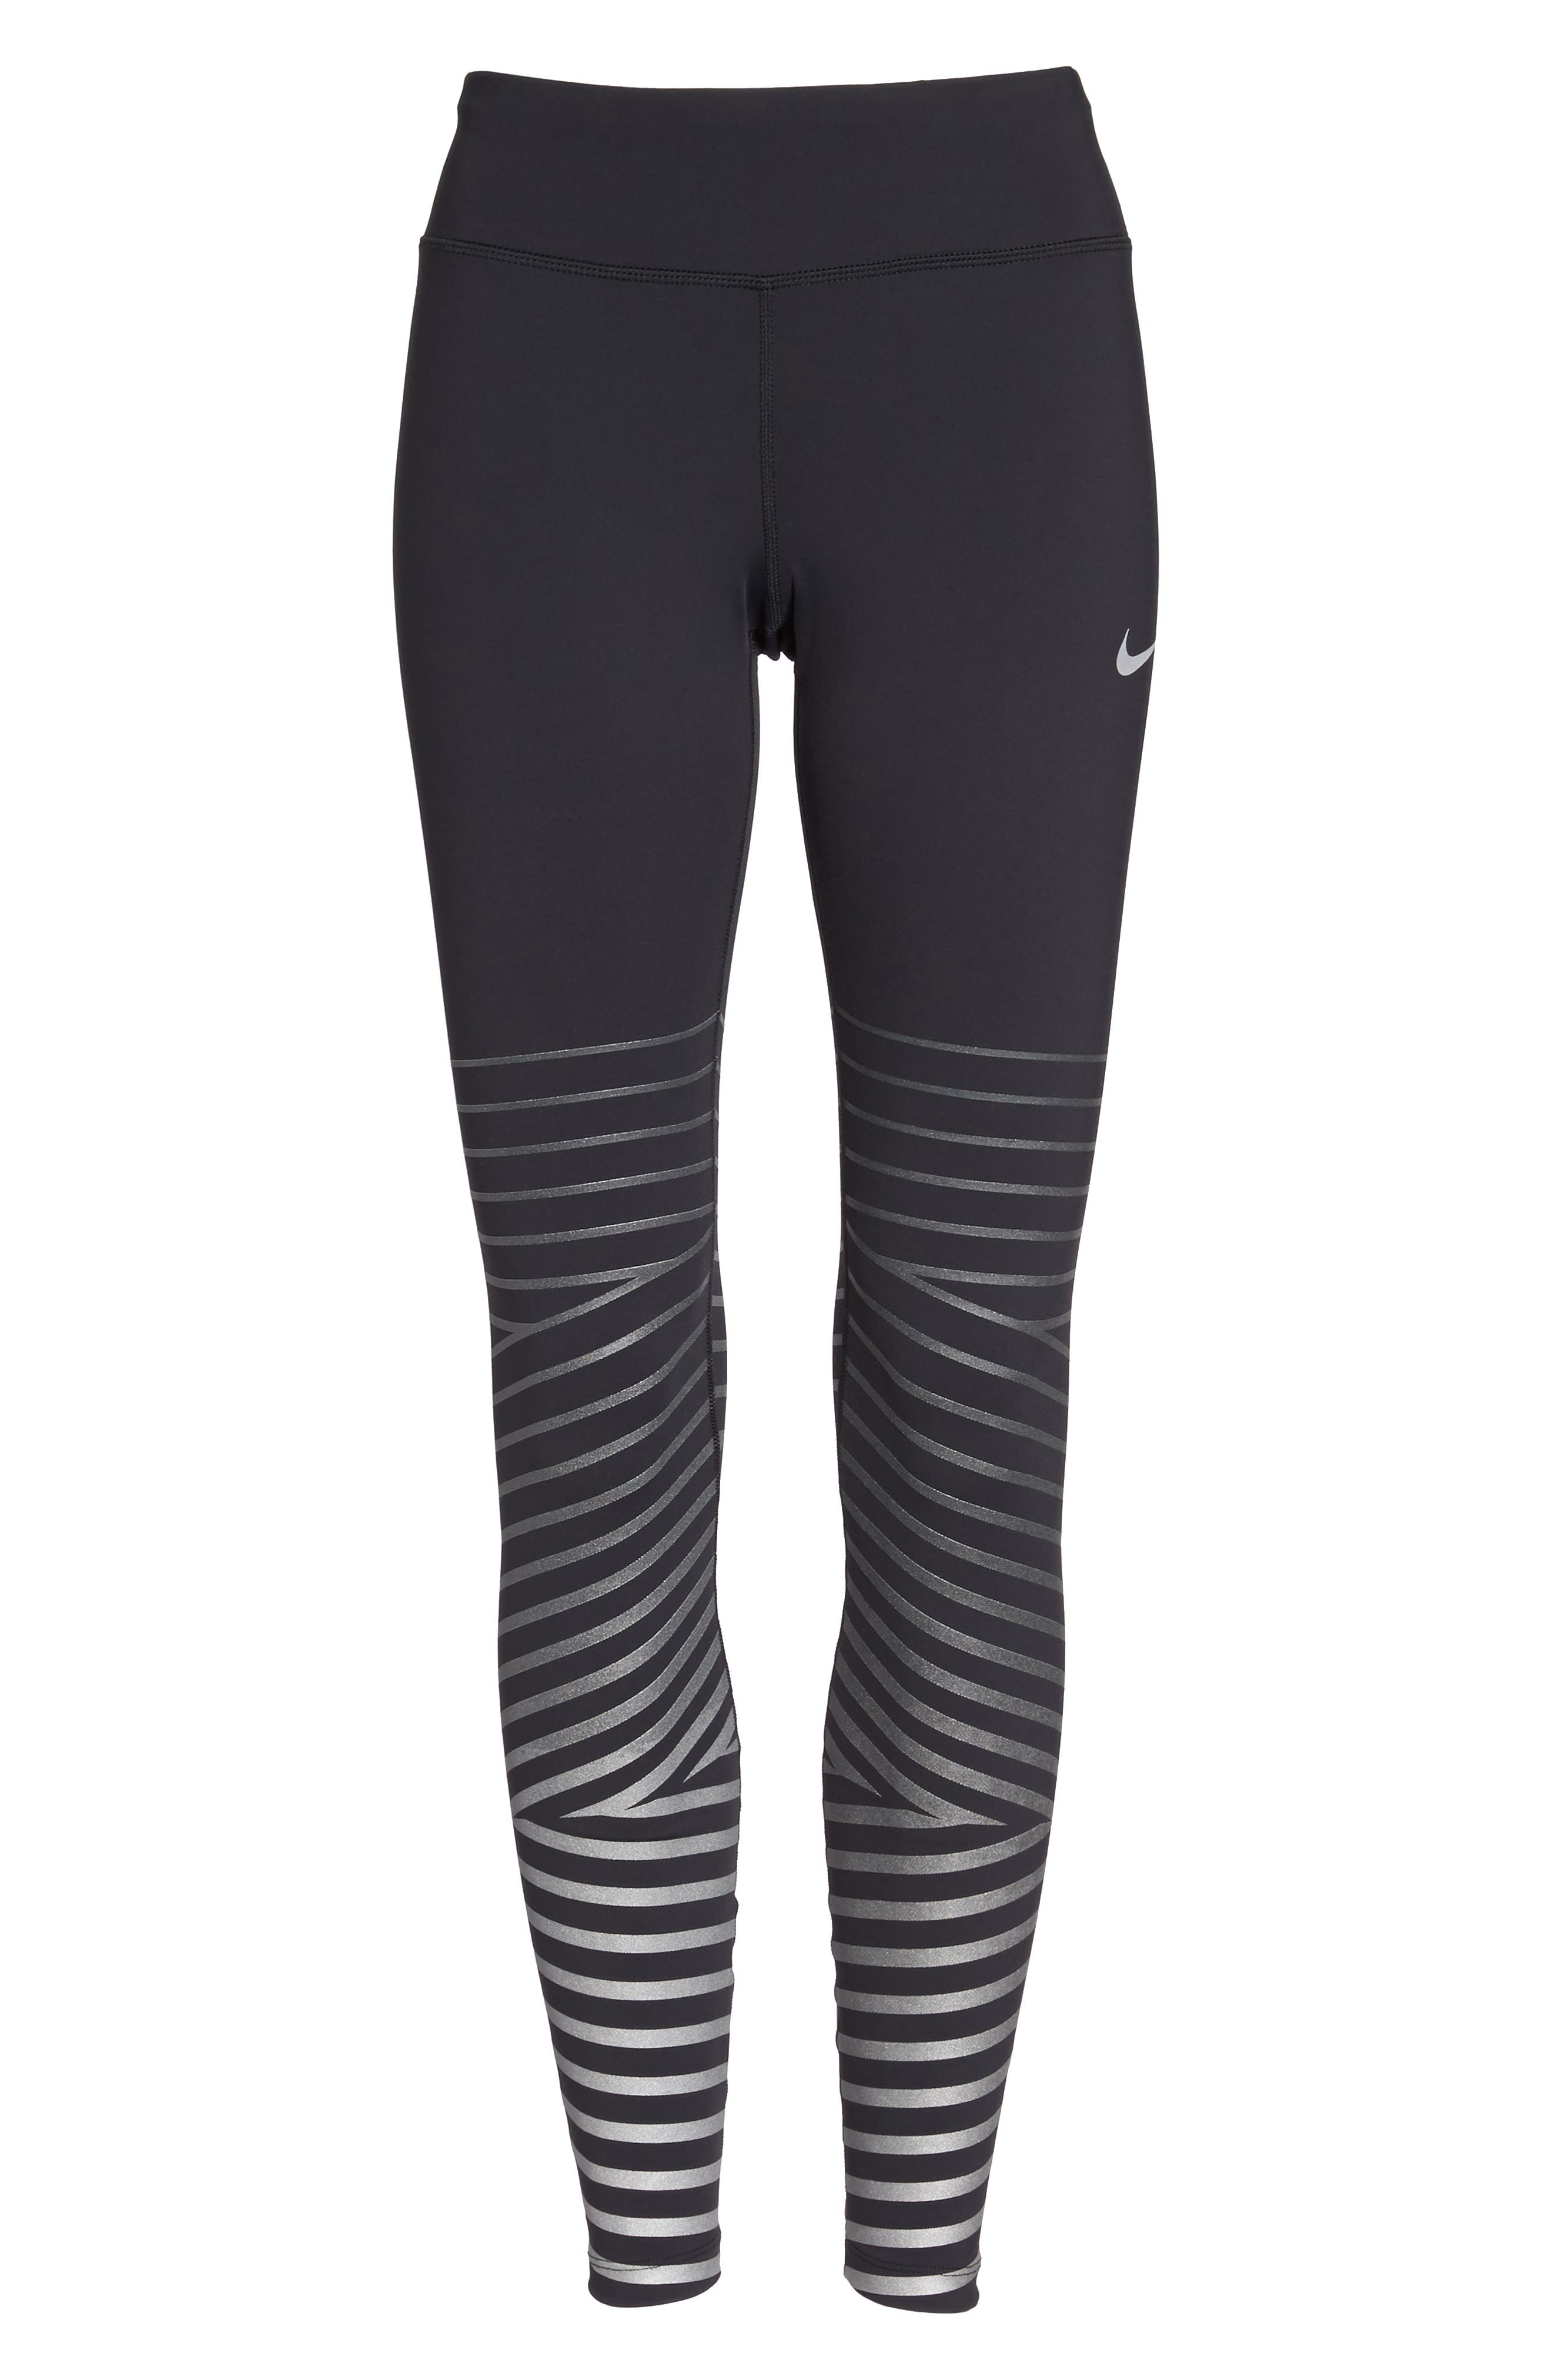 Power Epic Lux Flash Running Tights,                             Alternate thumbnail 6, color,                             010